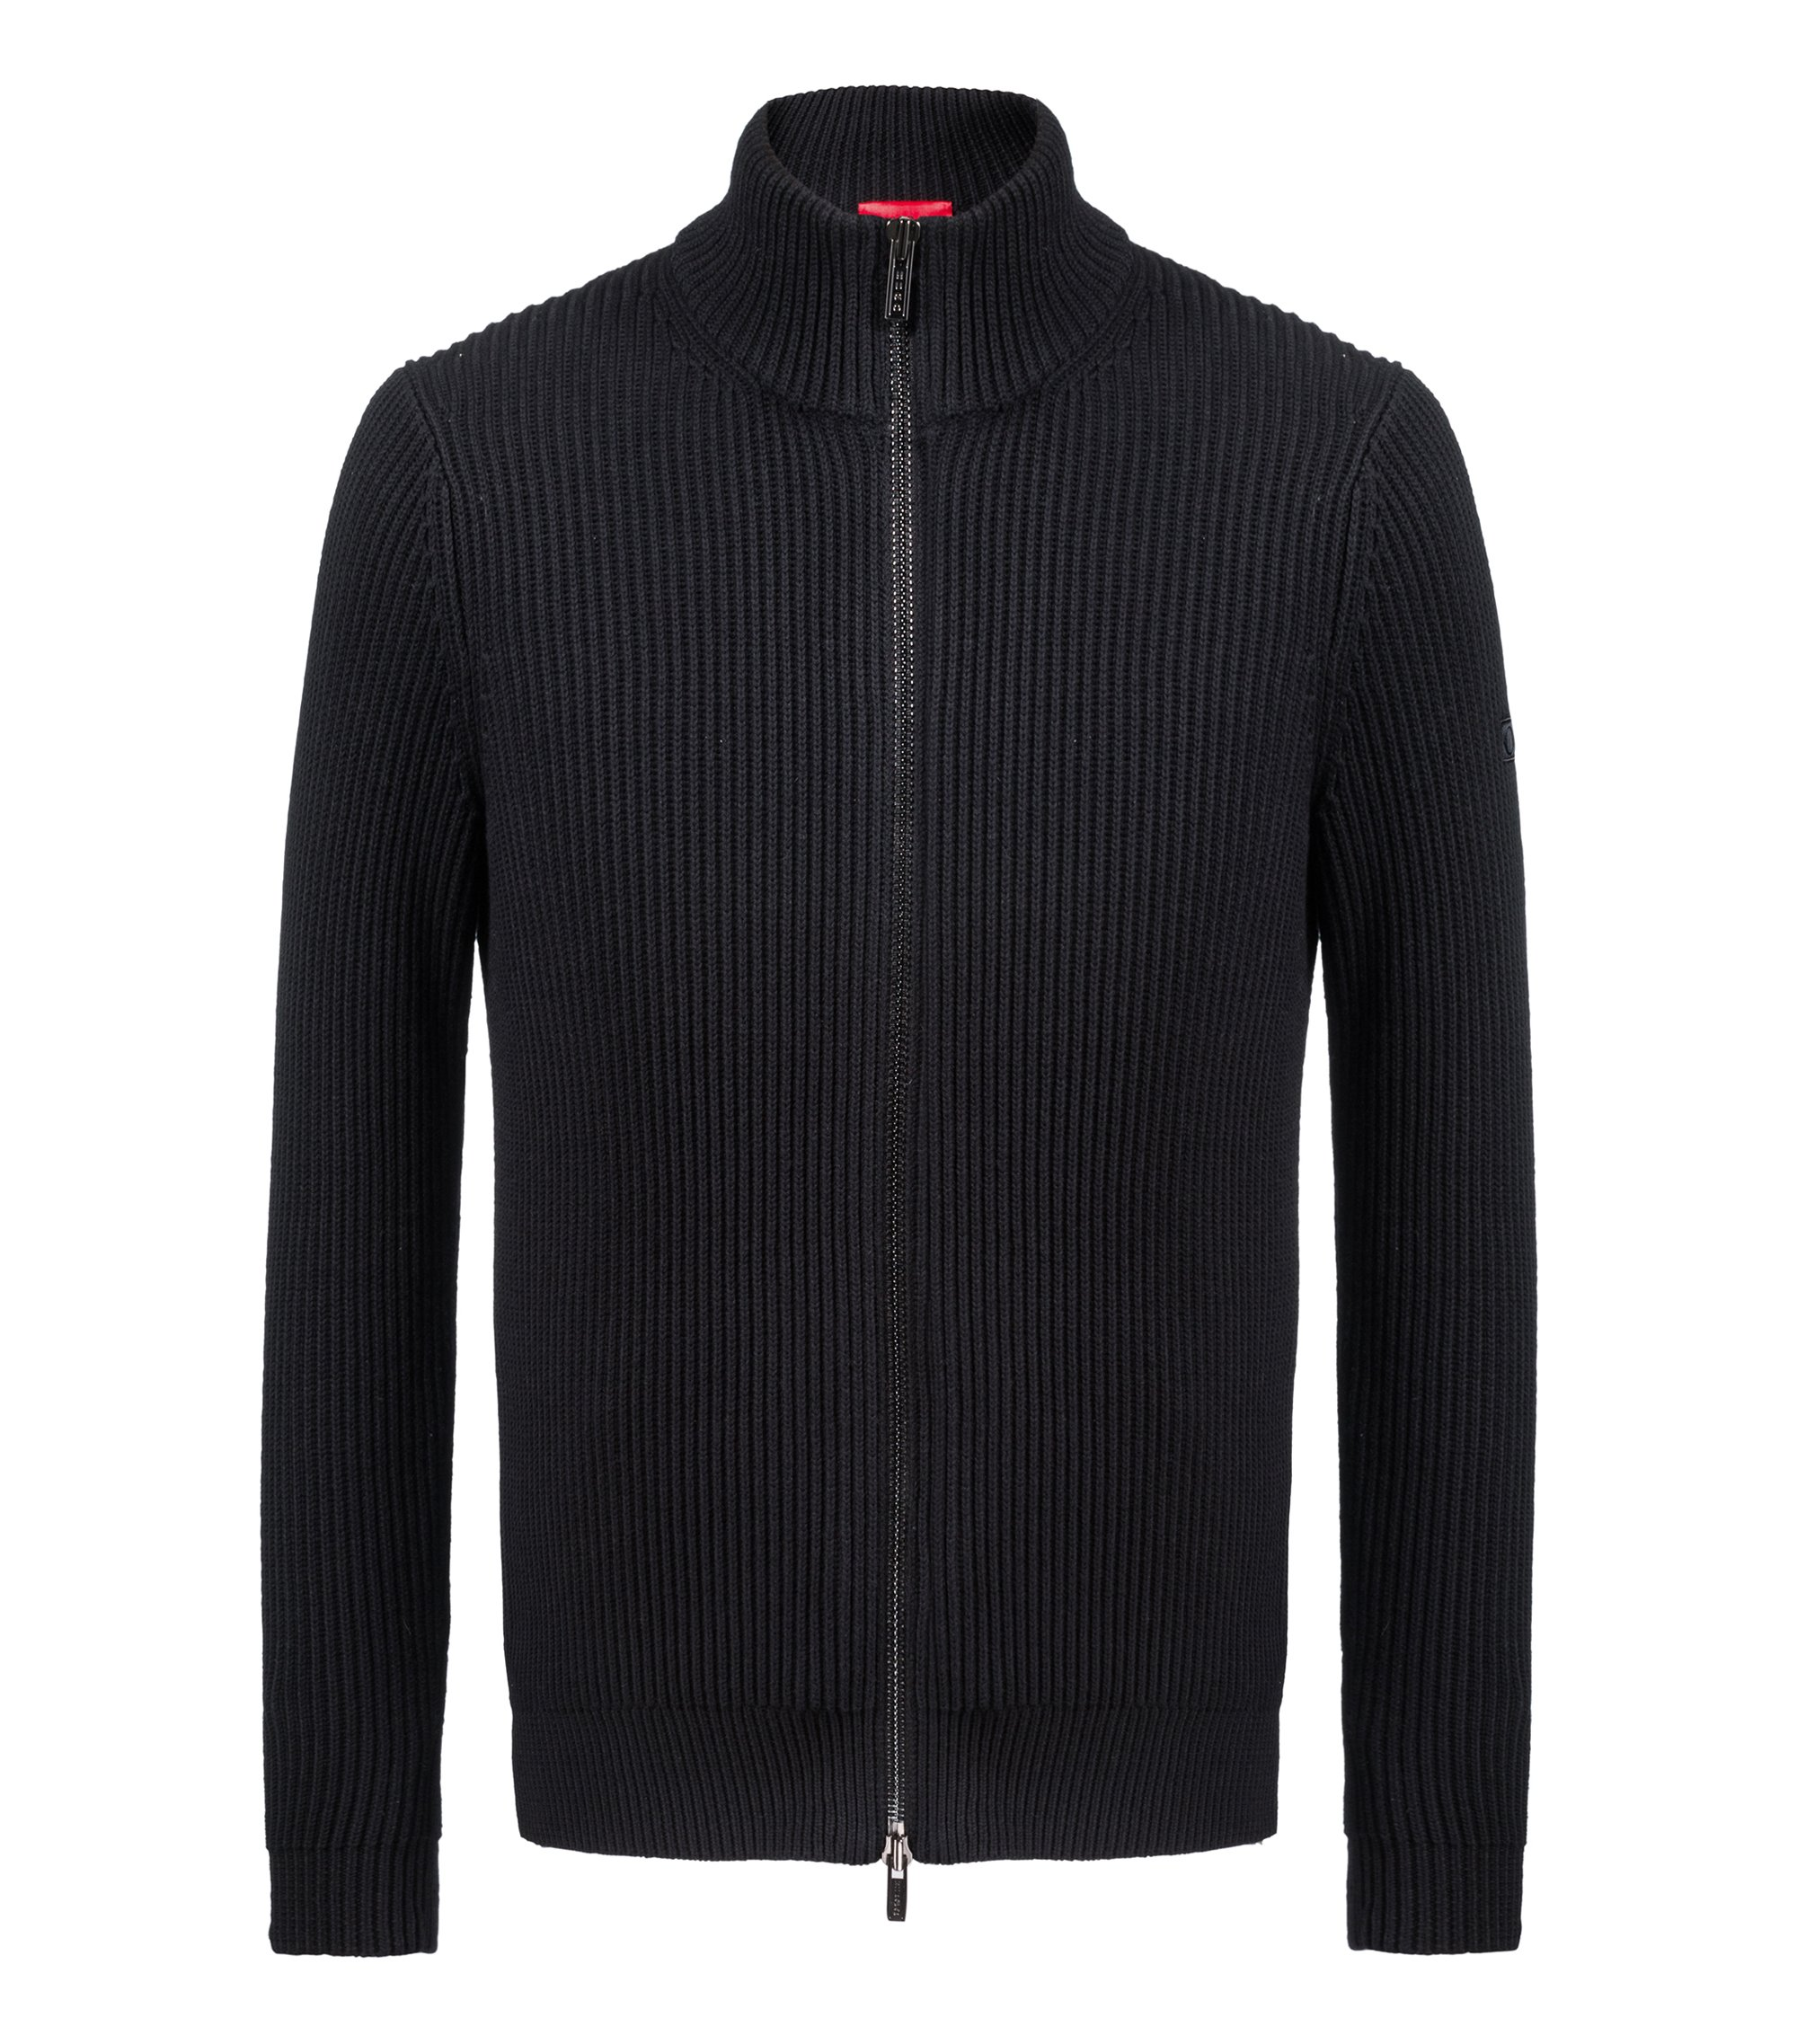 Zip-through knitted jacket in a wool-cotton blend, Black